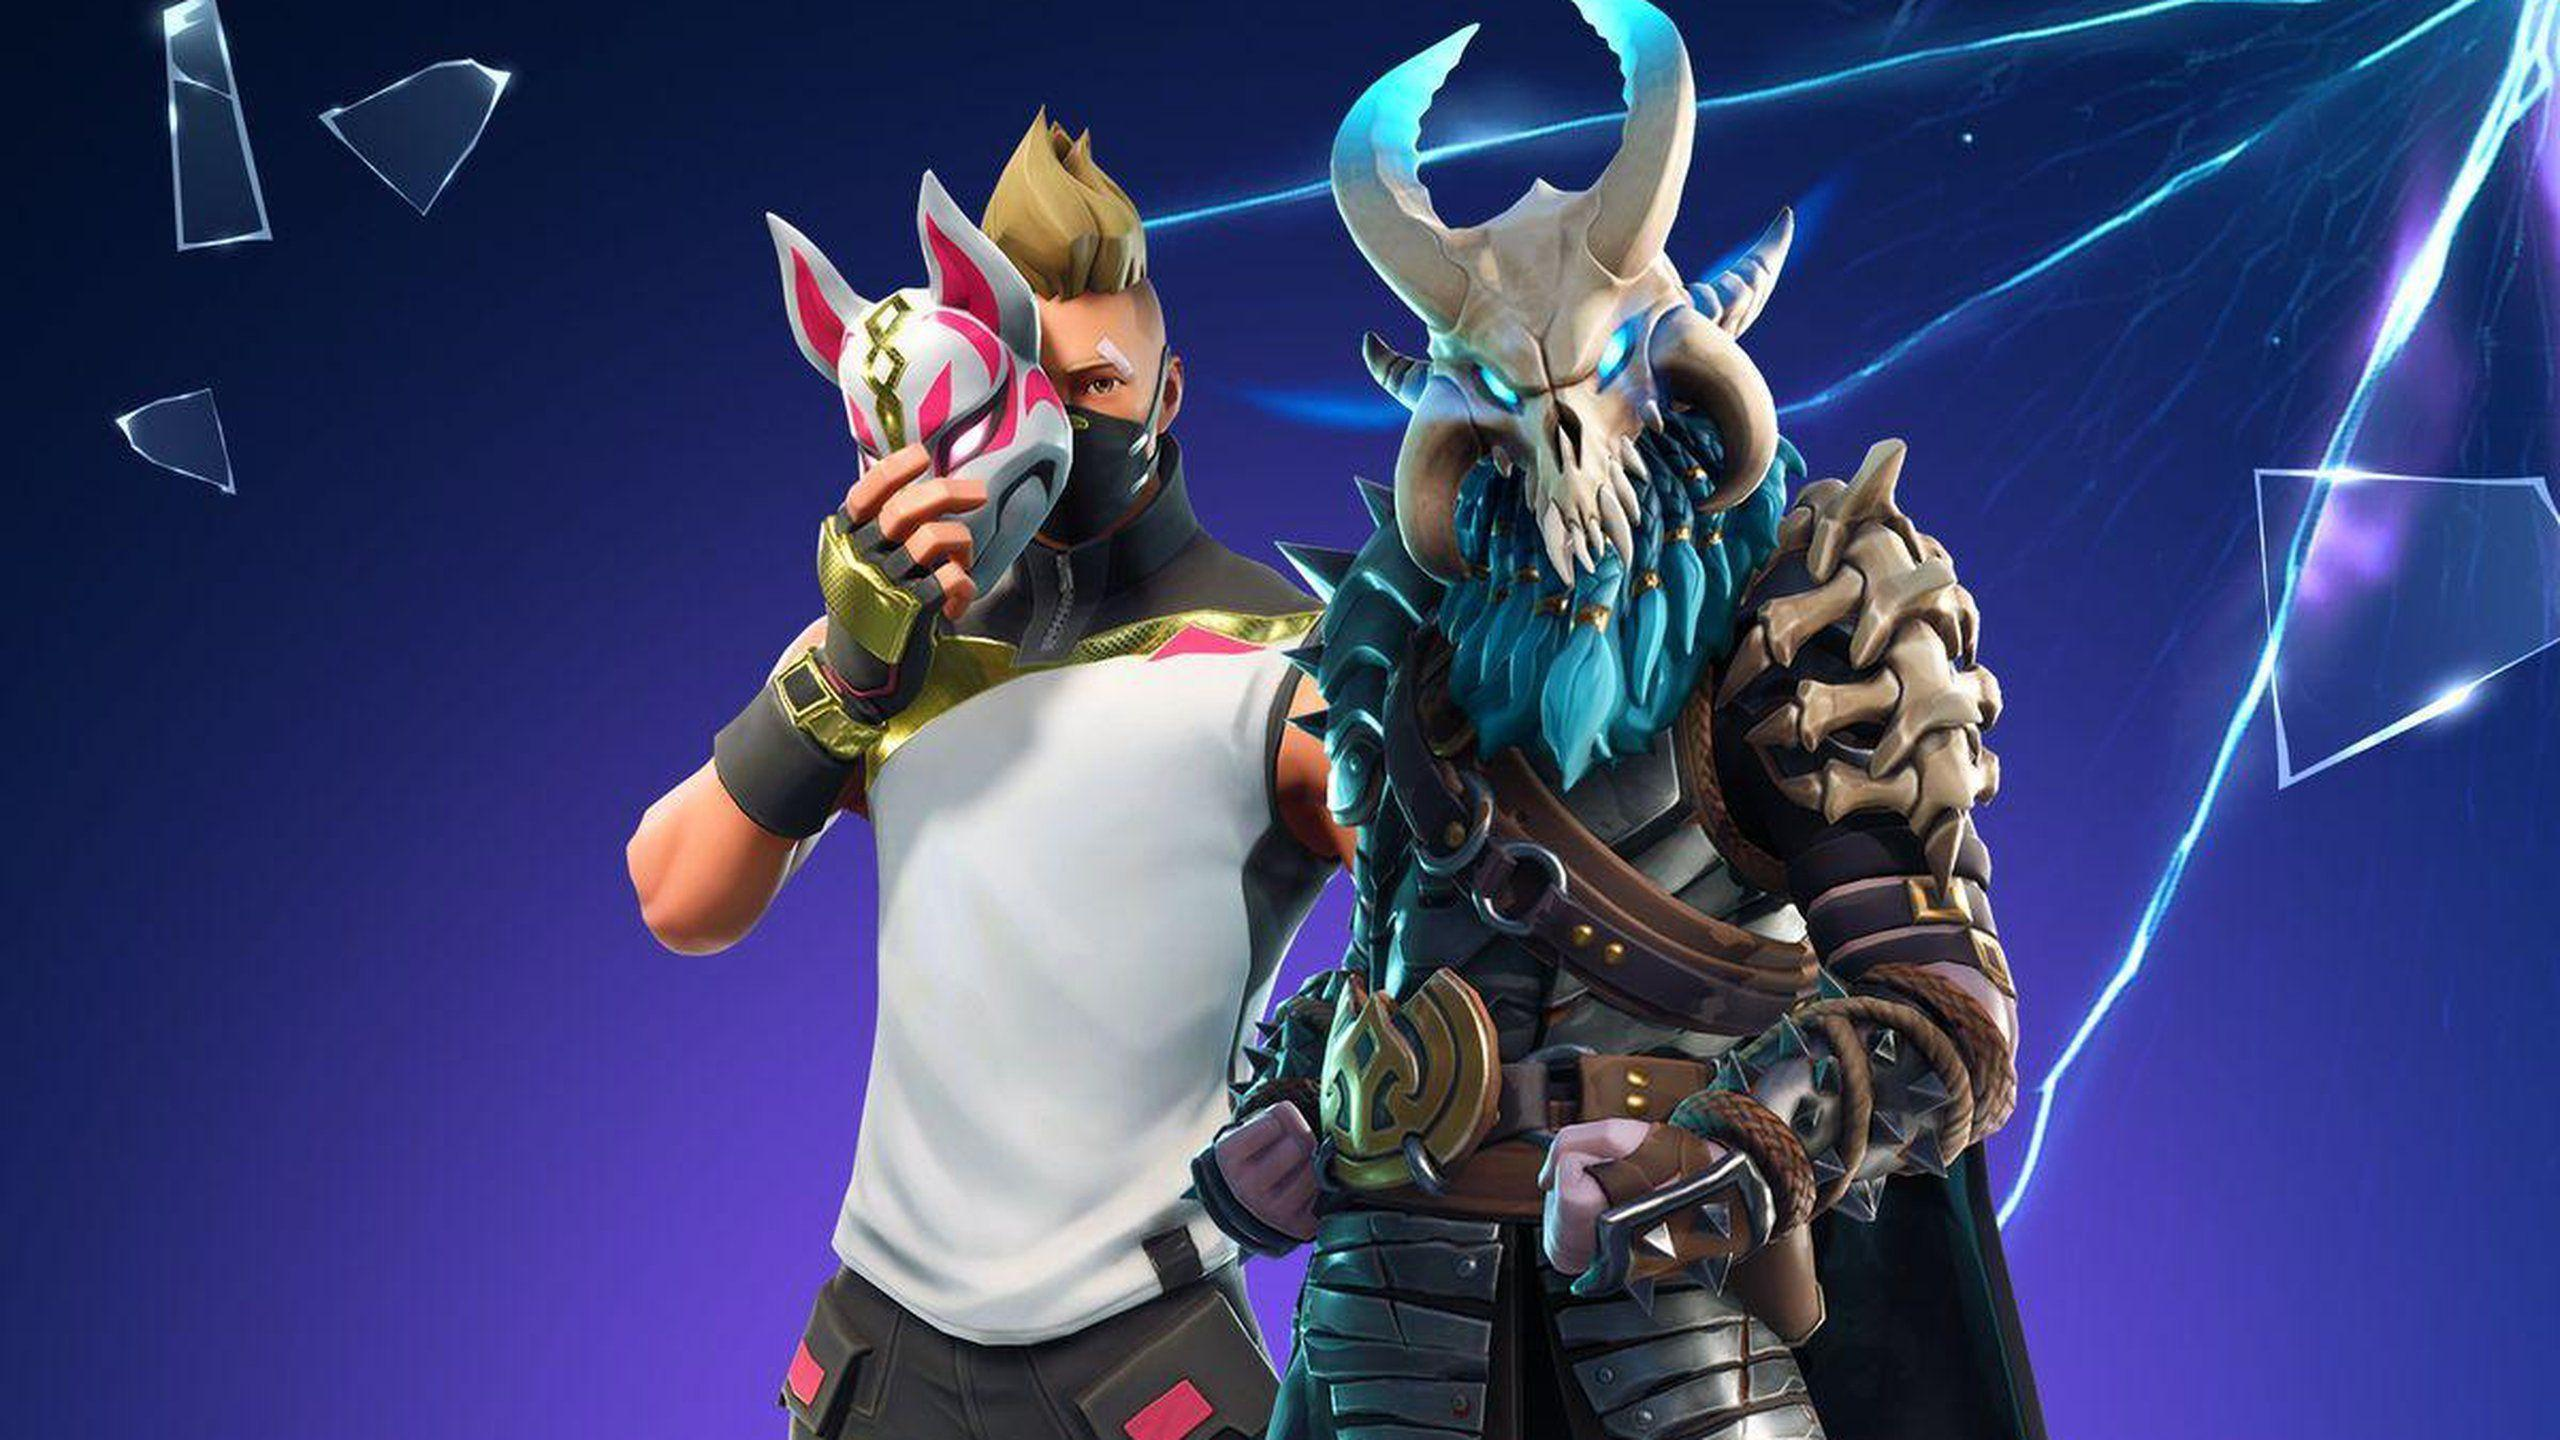 Fornite Battle Royale Wallpaper 2560 1440 Fortnite Hd Vs